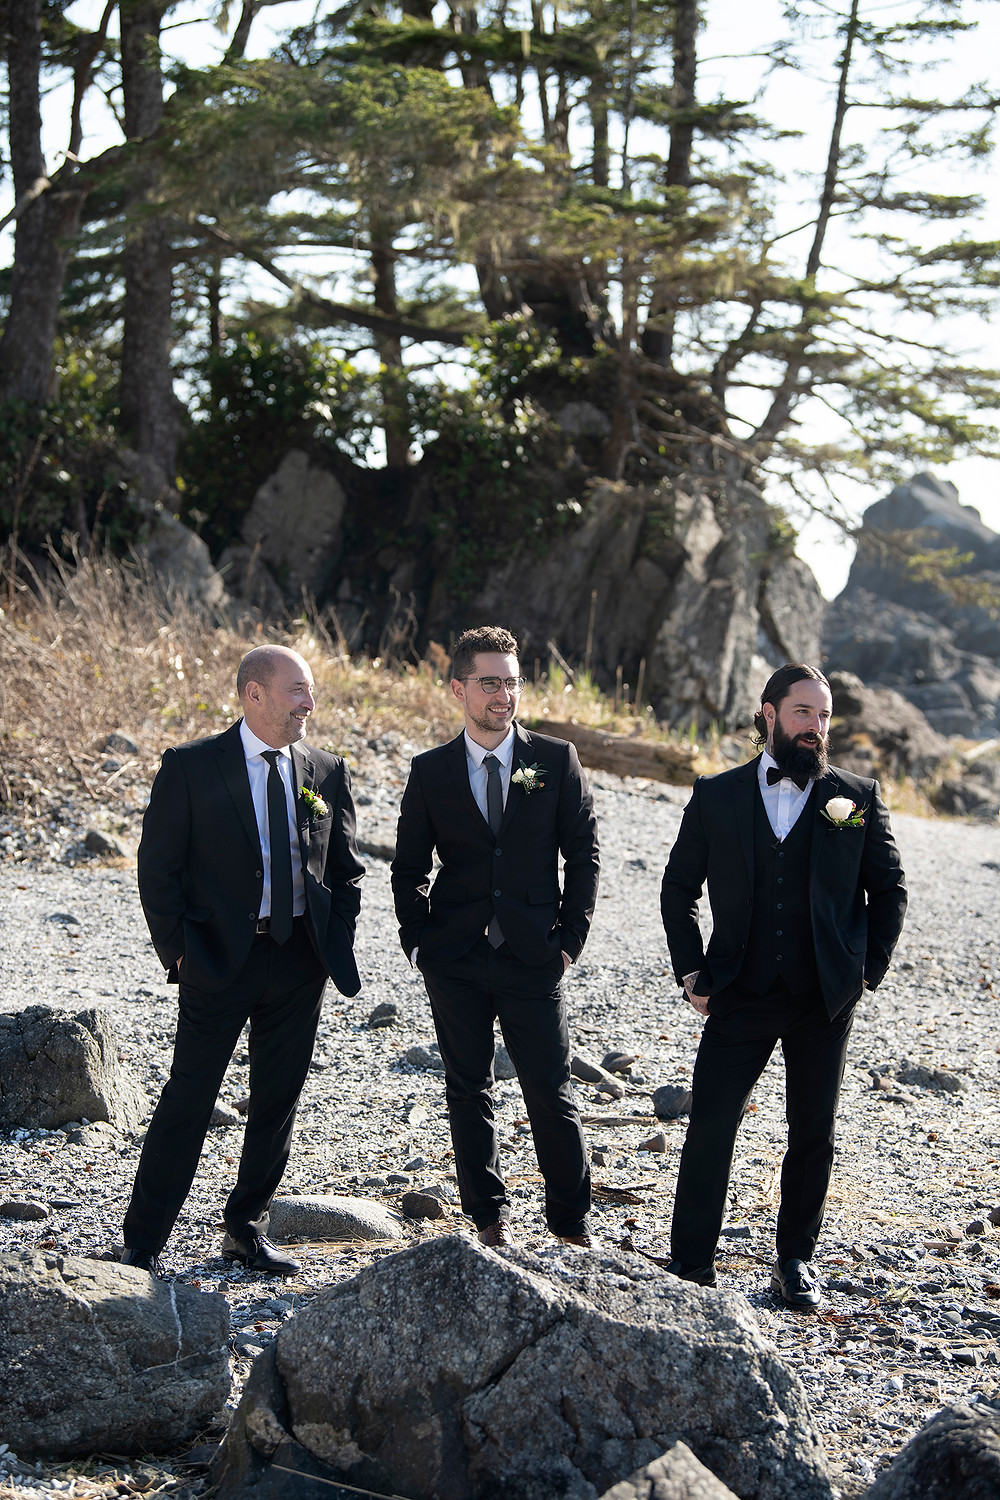 Guys wait for ceremony to commence at Ucluelet Elopement. Photographed by Kaitlyn Shea.